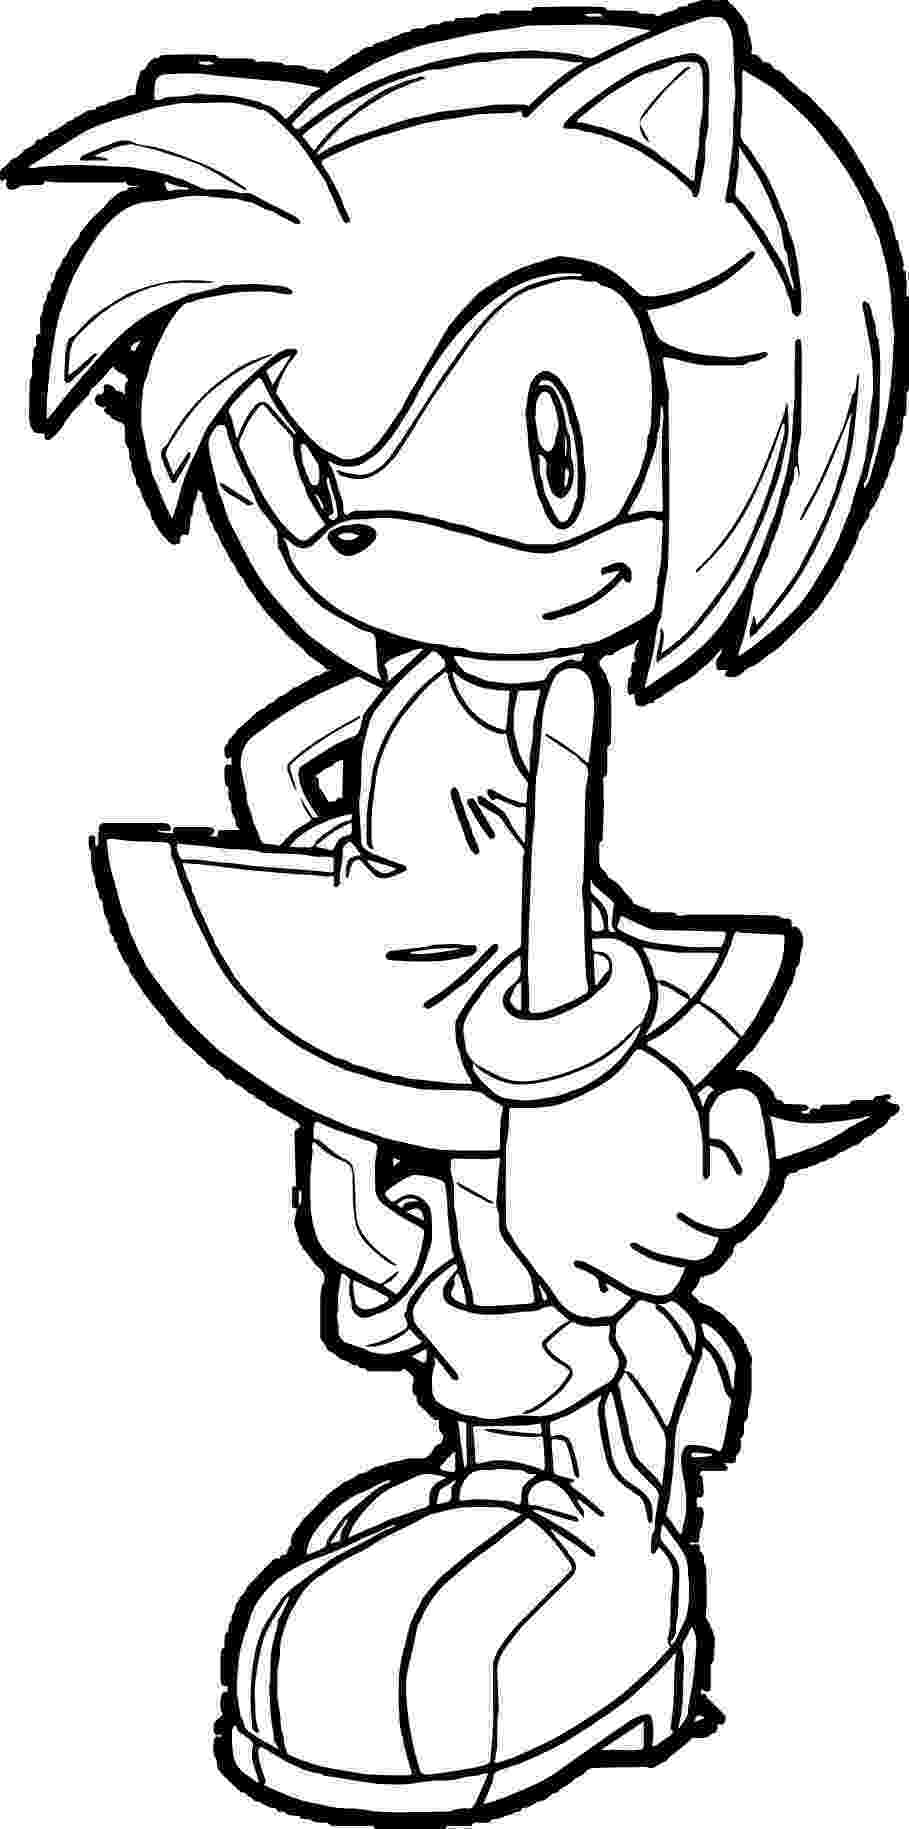 amy rose coloring pages amy rose coloring pages to download and print for free rose coloring pages amy